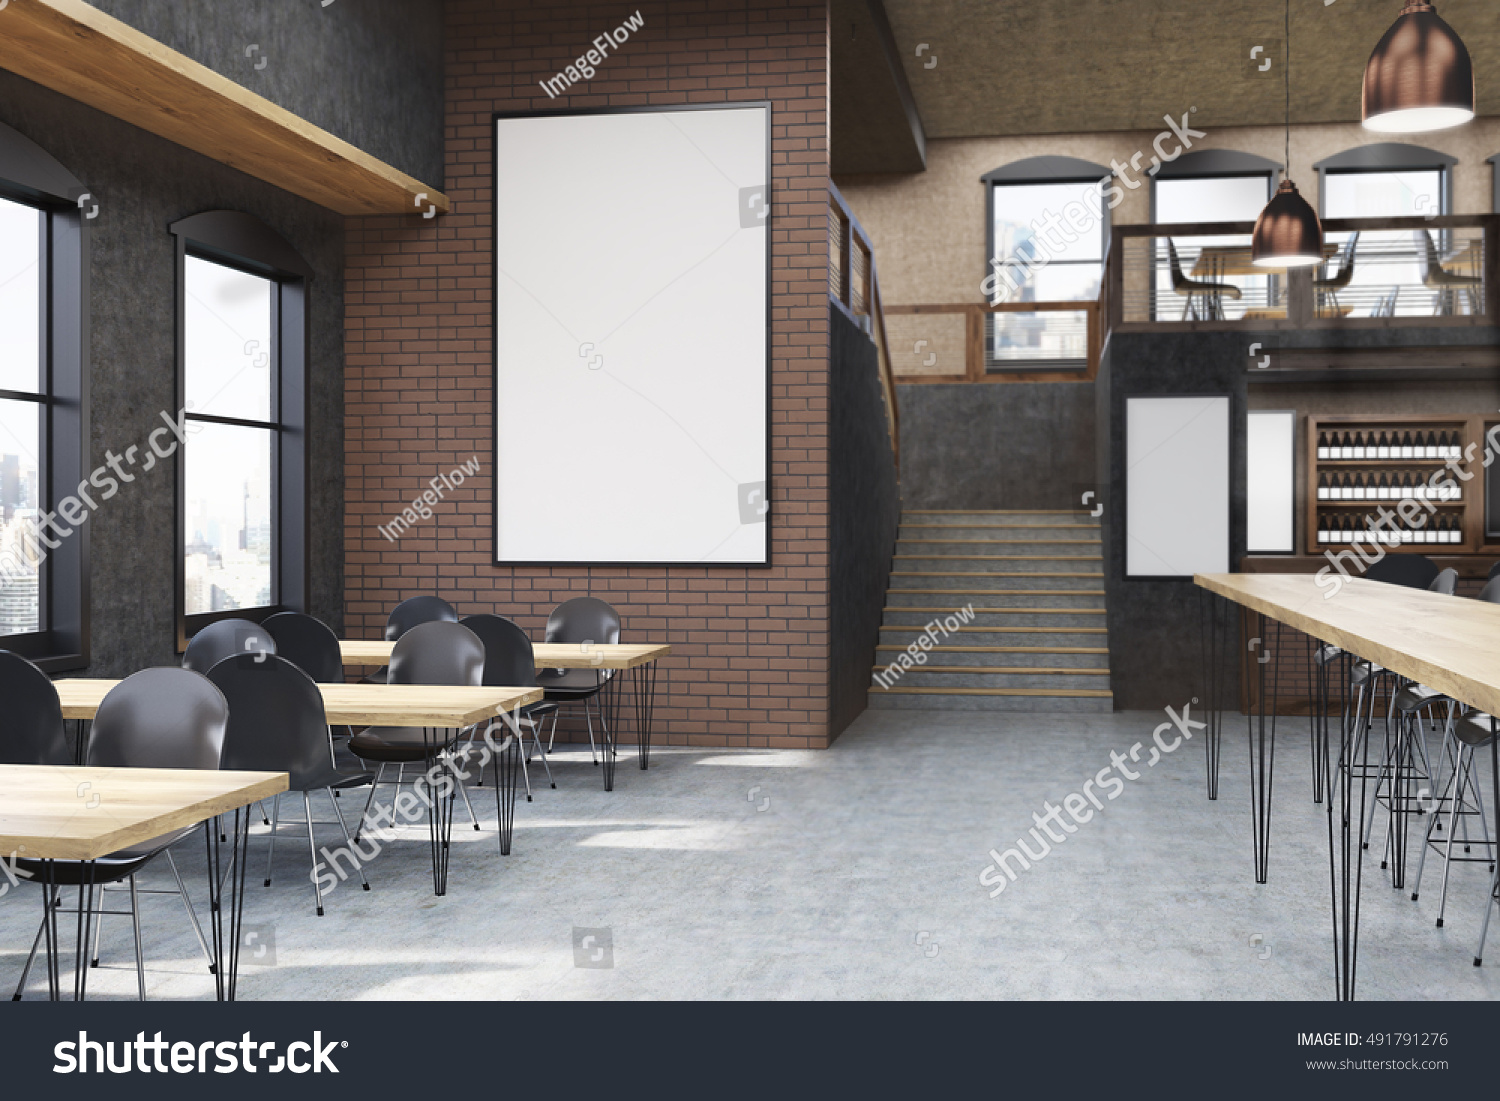 Cafe interior posters tables chairs concept stock